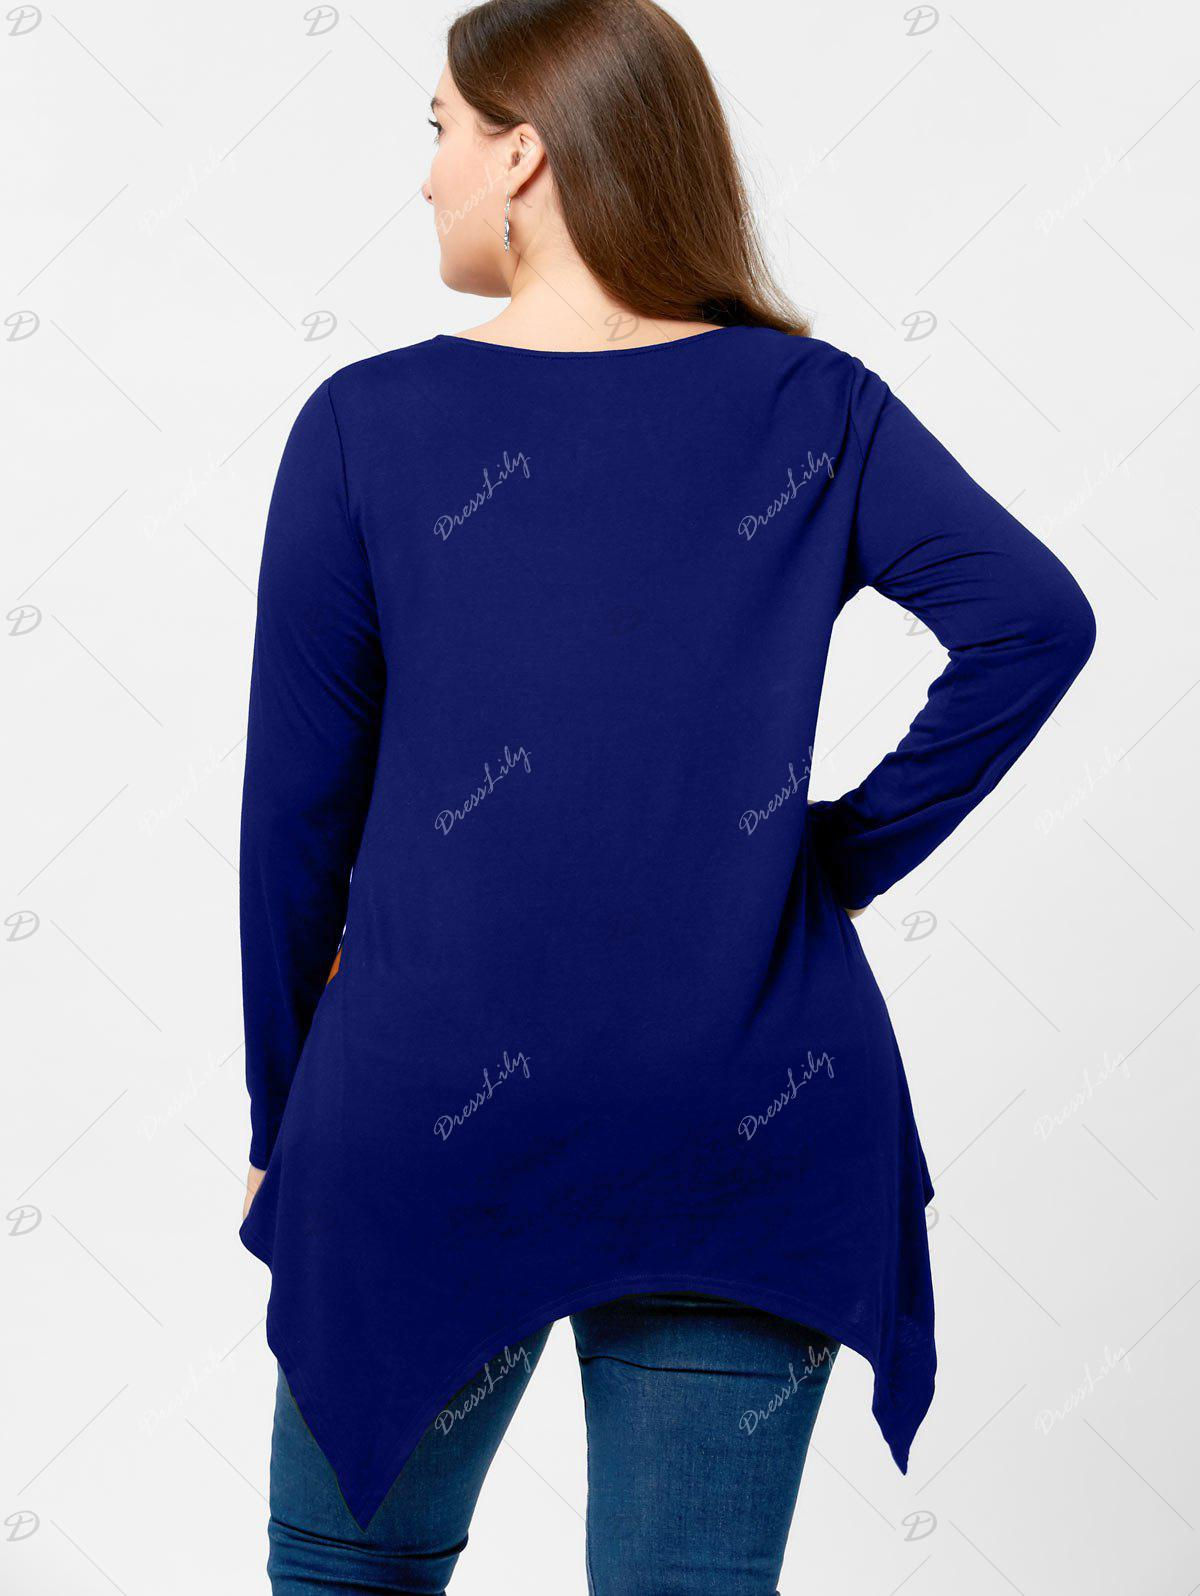 2018 Plus Size Long Sleeve Handkerchief T Shirt Blue Xl In